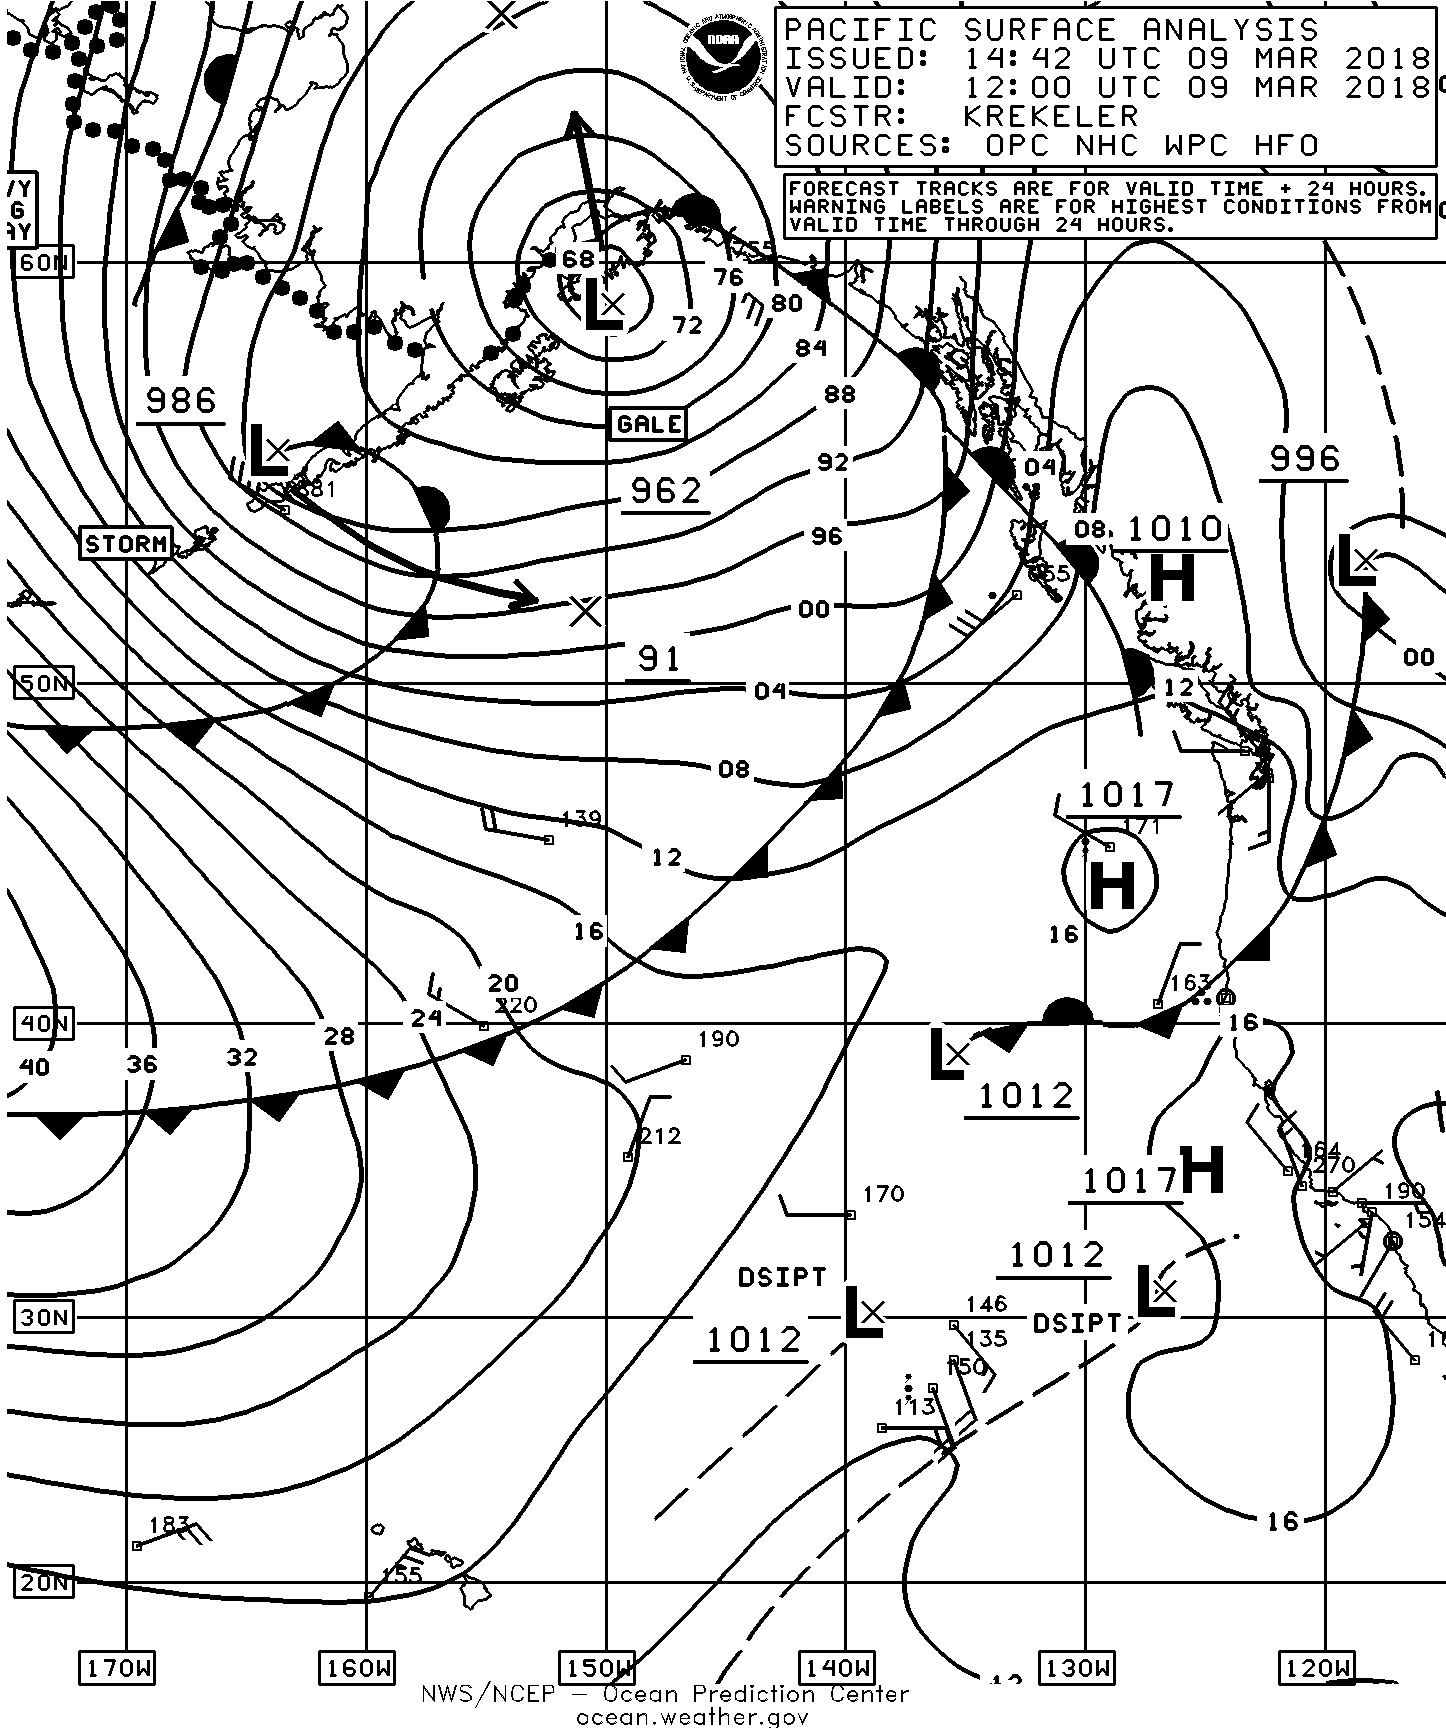 racing page 9 sailish Weather Station Mounting march 9 surface analysis